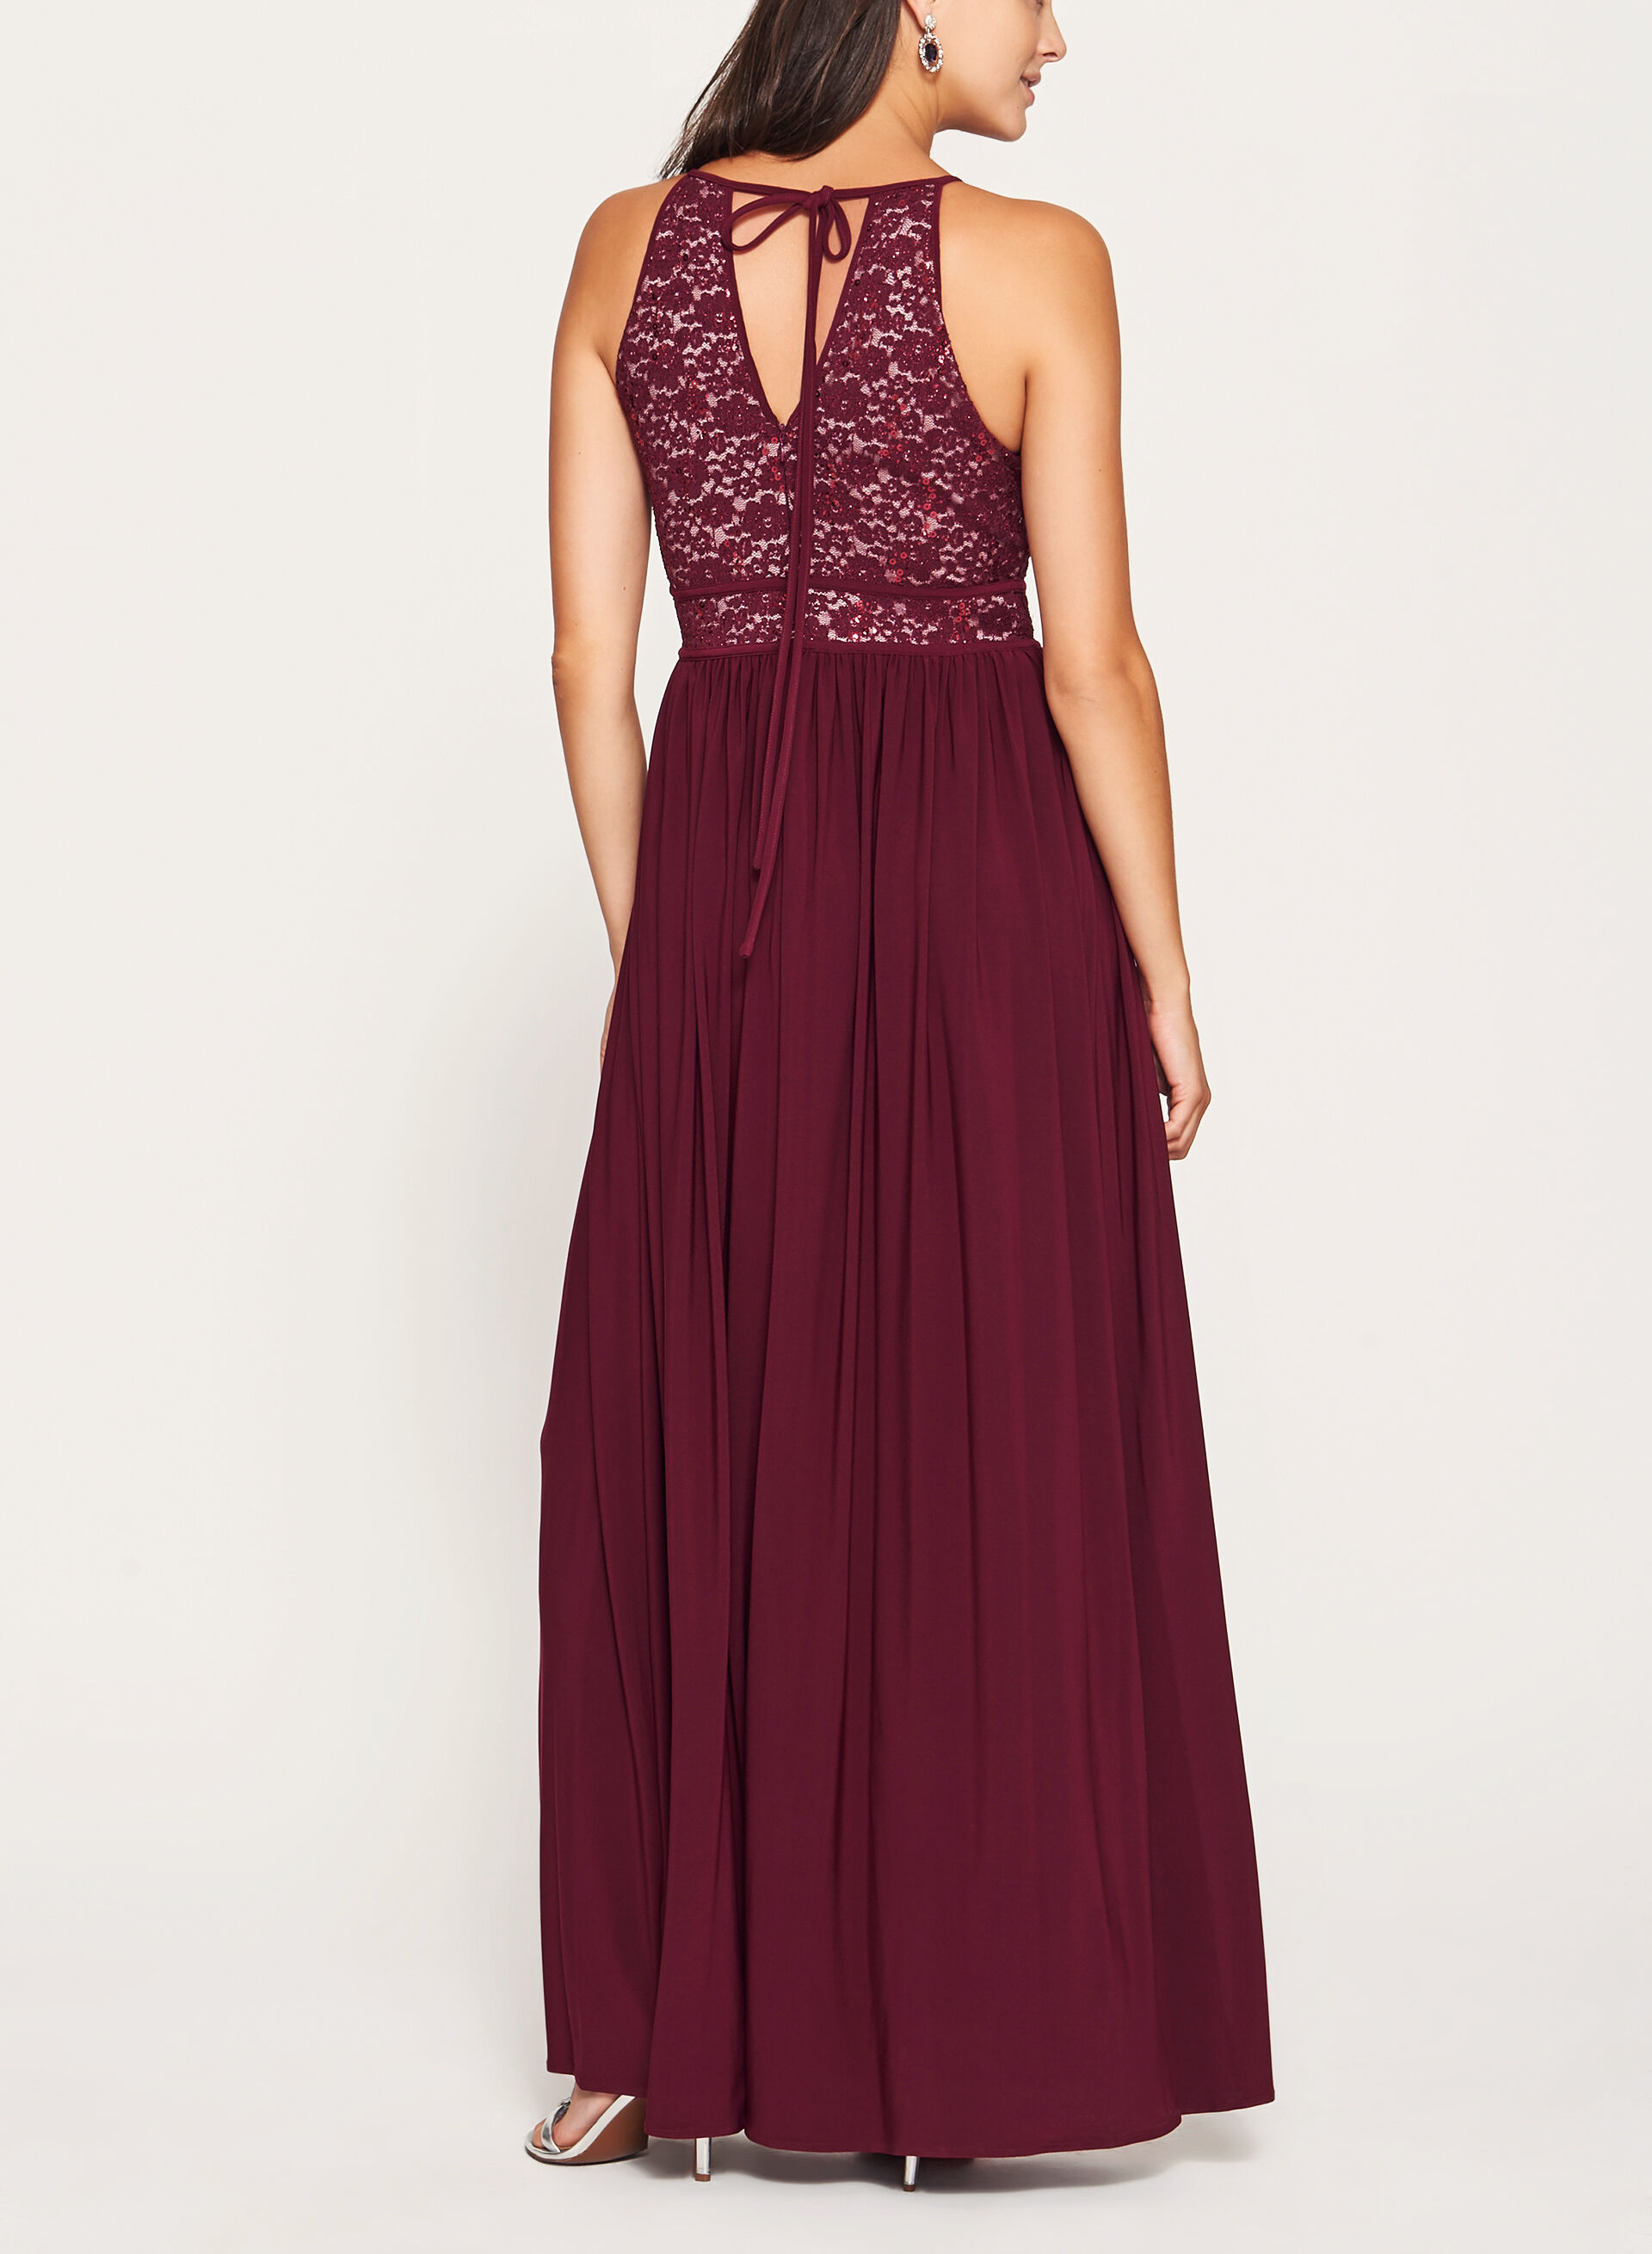 Glitter Lace And Sequin Halter Dress Laura